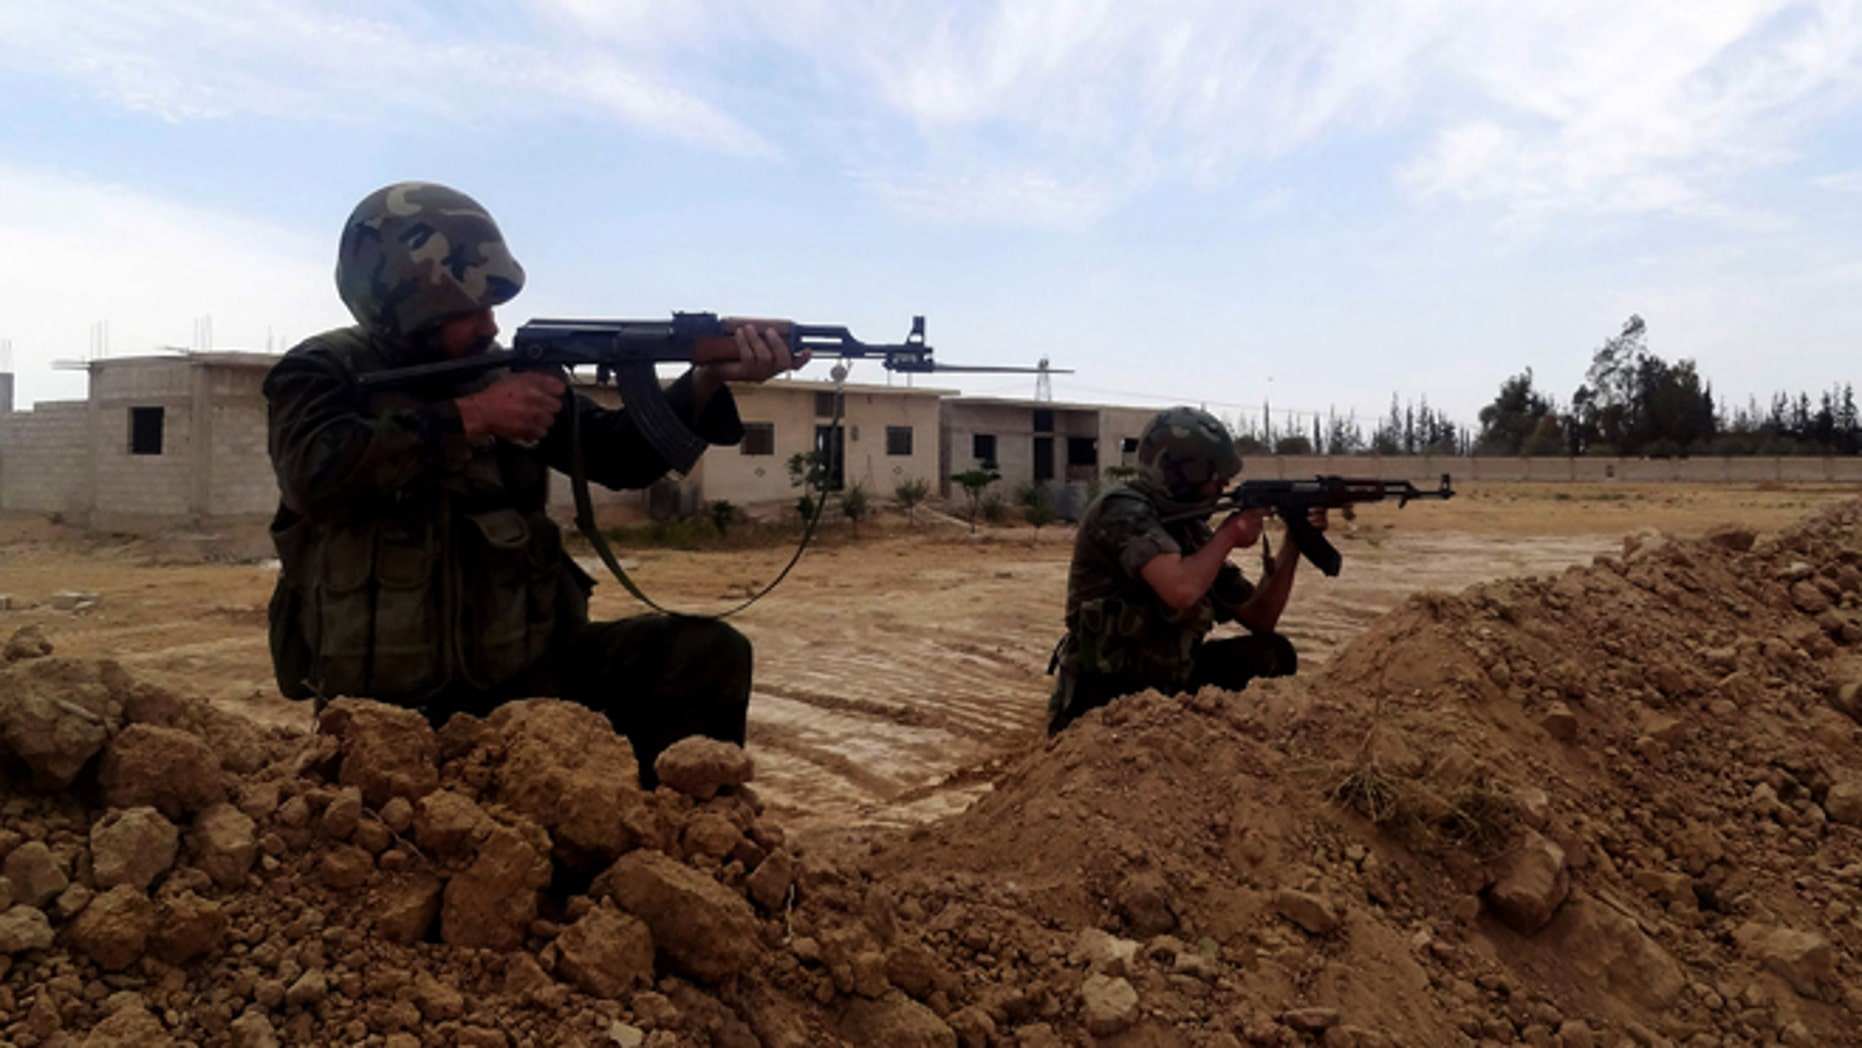 April 24, 2013: This photo released by the Syrian official news agency SANA, shows two Syrian Army soldiers aiming their weapons, in Otaybah town, east of Damascus, Syria. After five weeks of battle, Syrian government troops captured a strategic town near Damascus, cutting an arms route for rebels trying to topple President Bashar Assad's regime, state media and activists said Thursday.